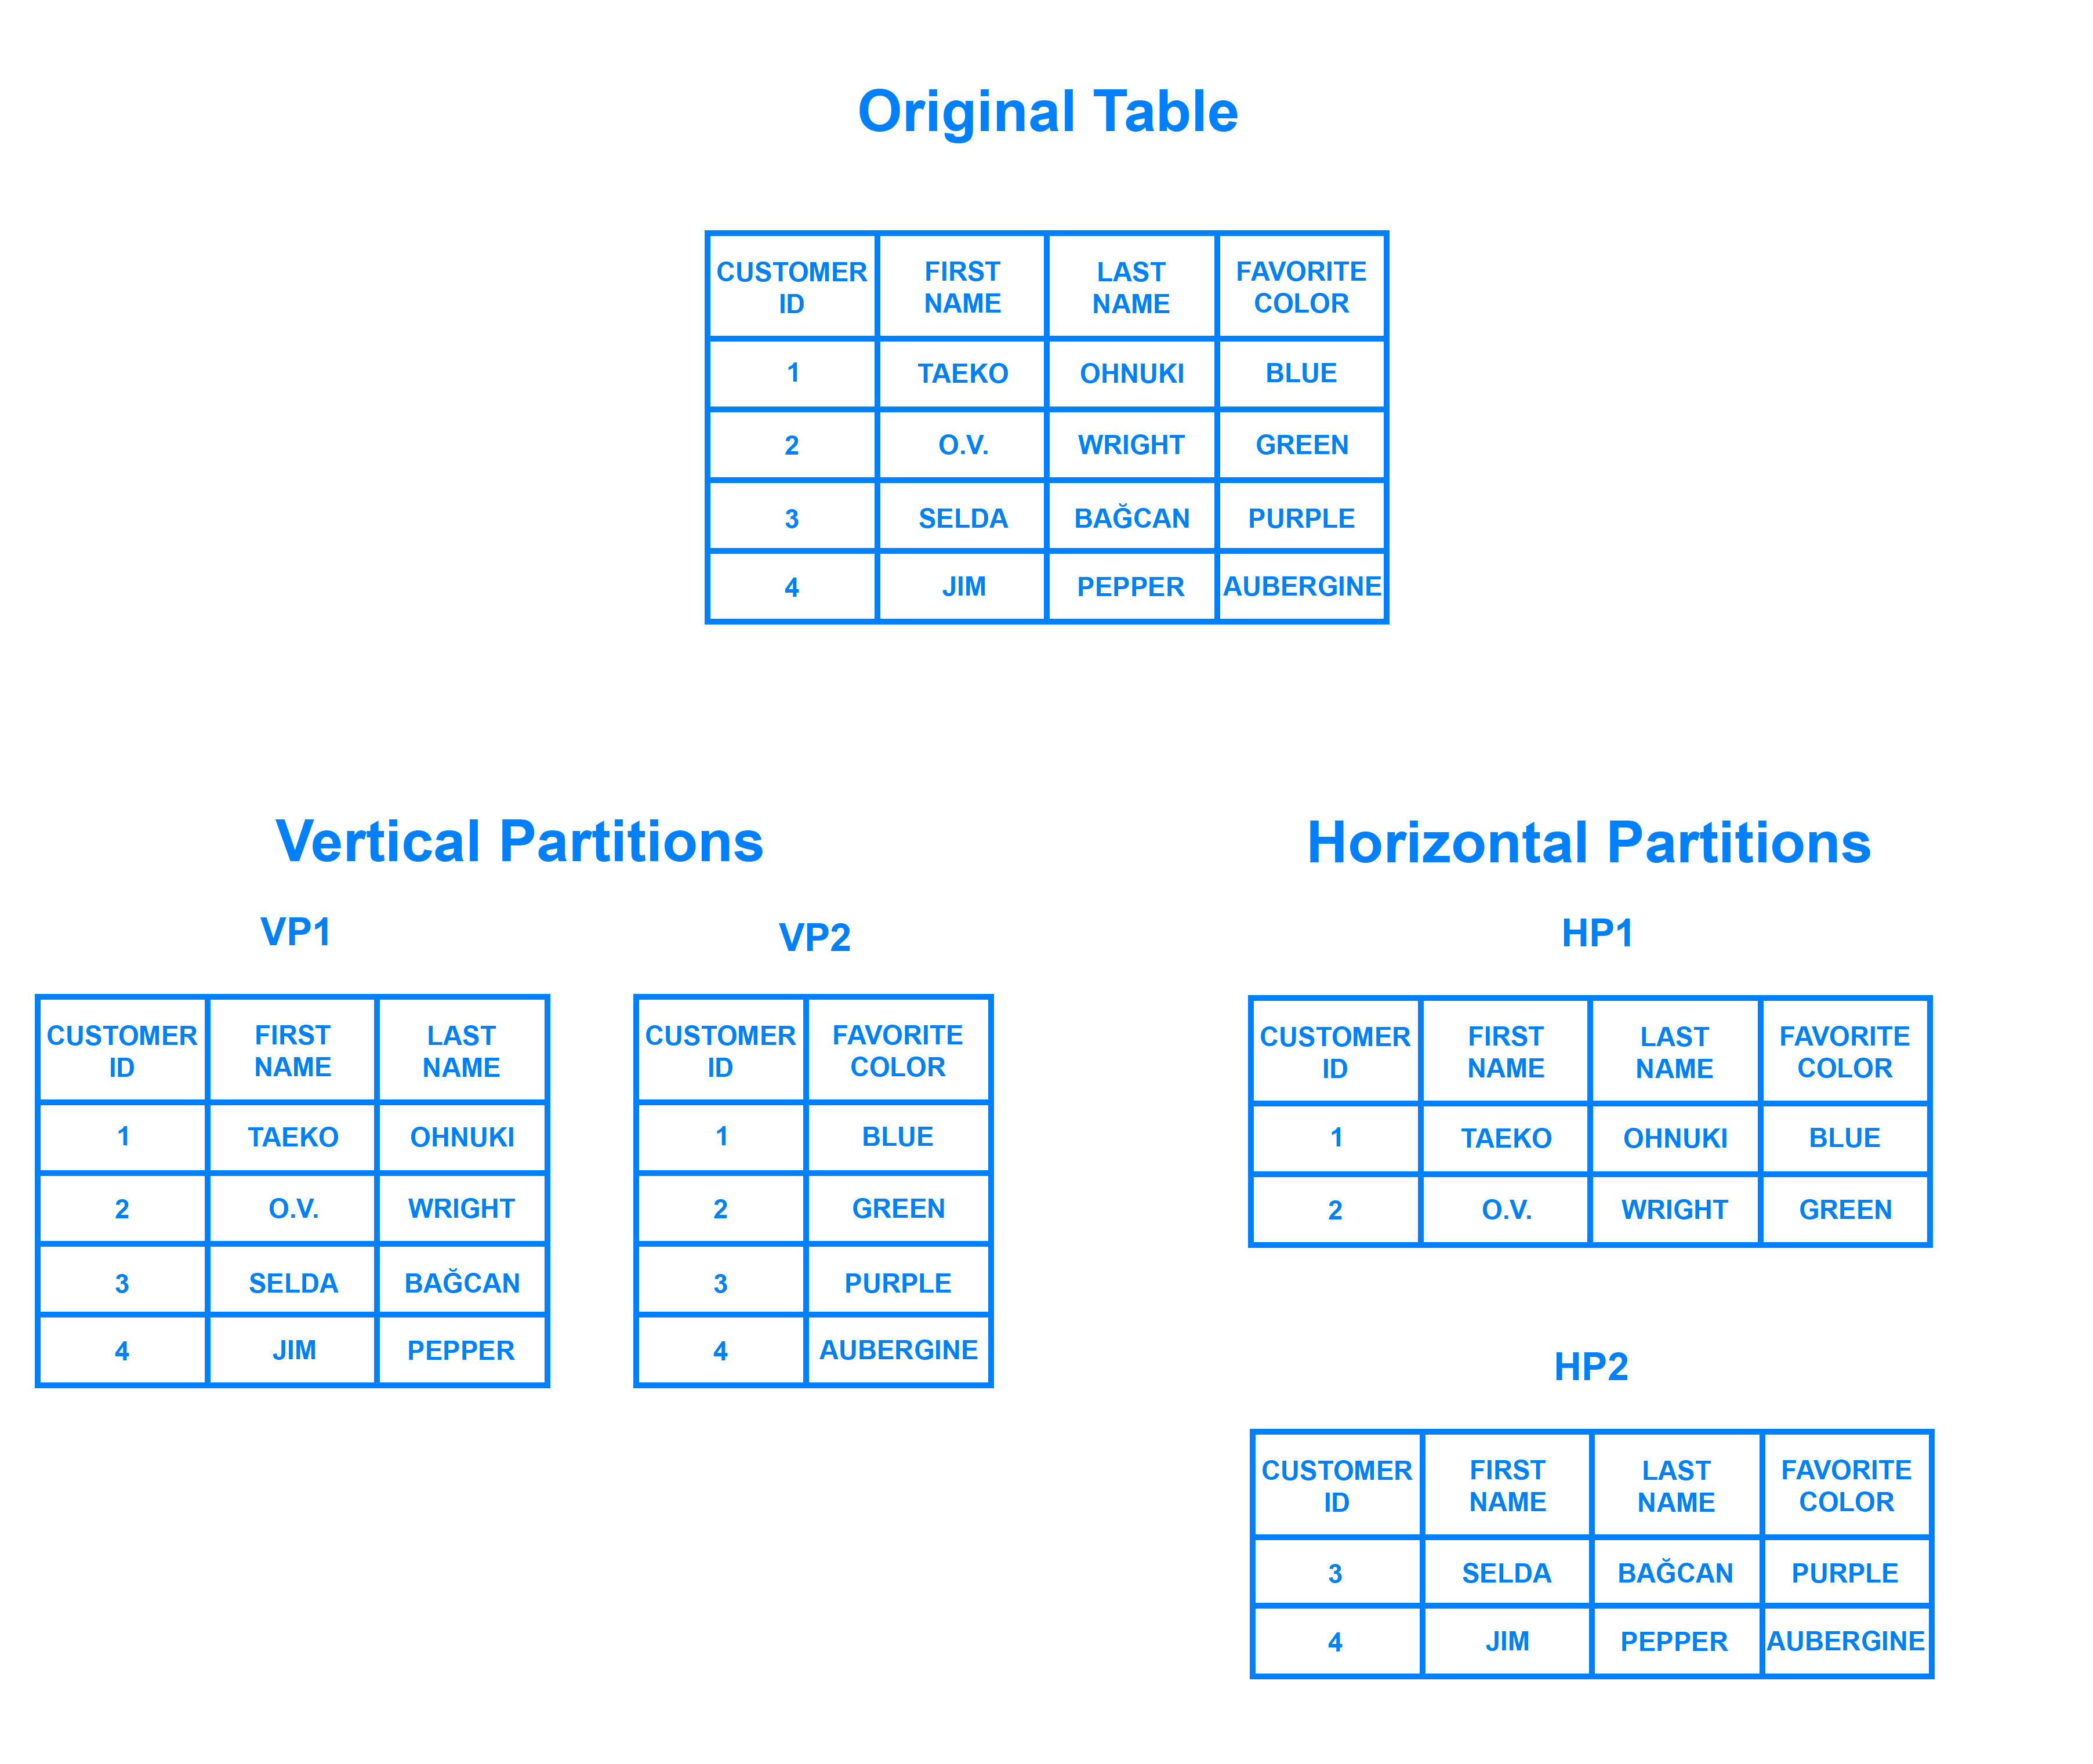 Example tables showing horizontal and vertical partitioning